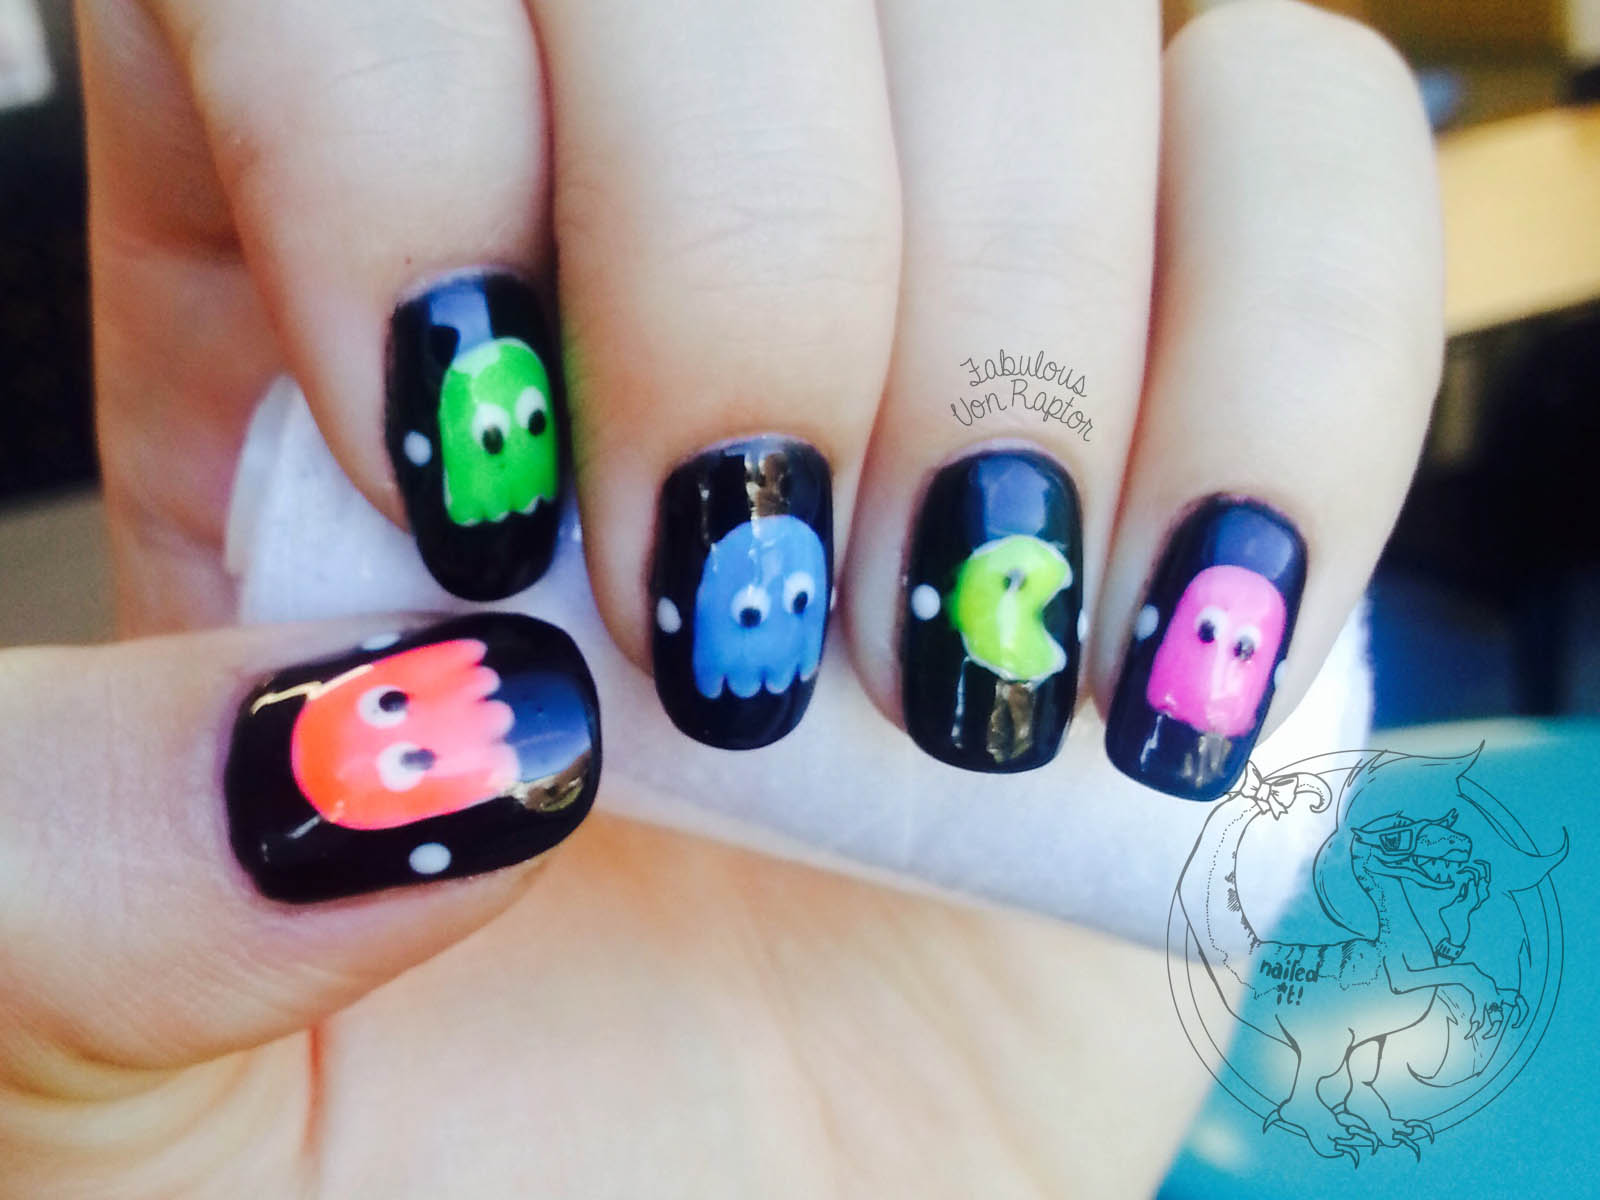 Game fabulous von raptor fabulous von raptor pacman manicure prinsesfo Image collections